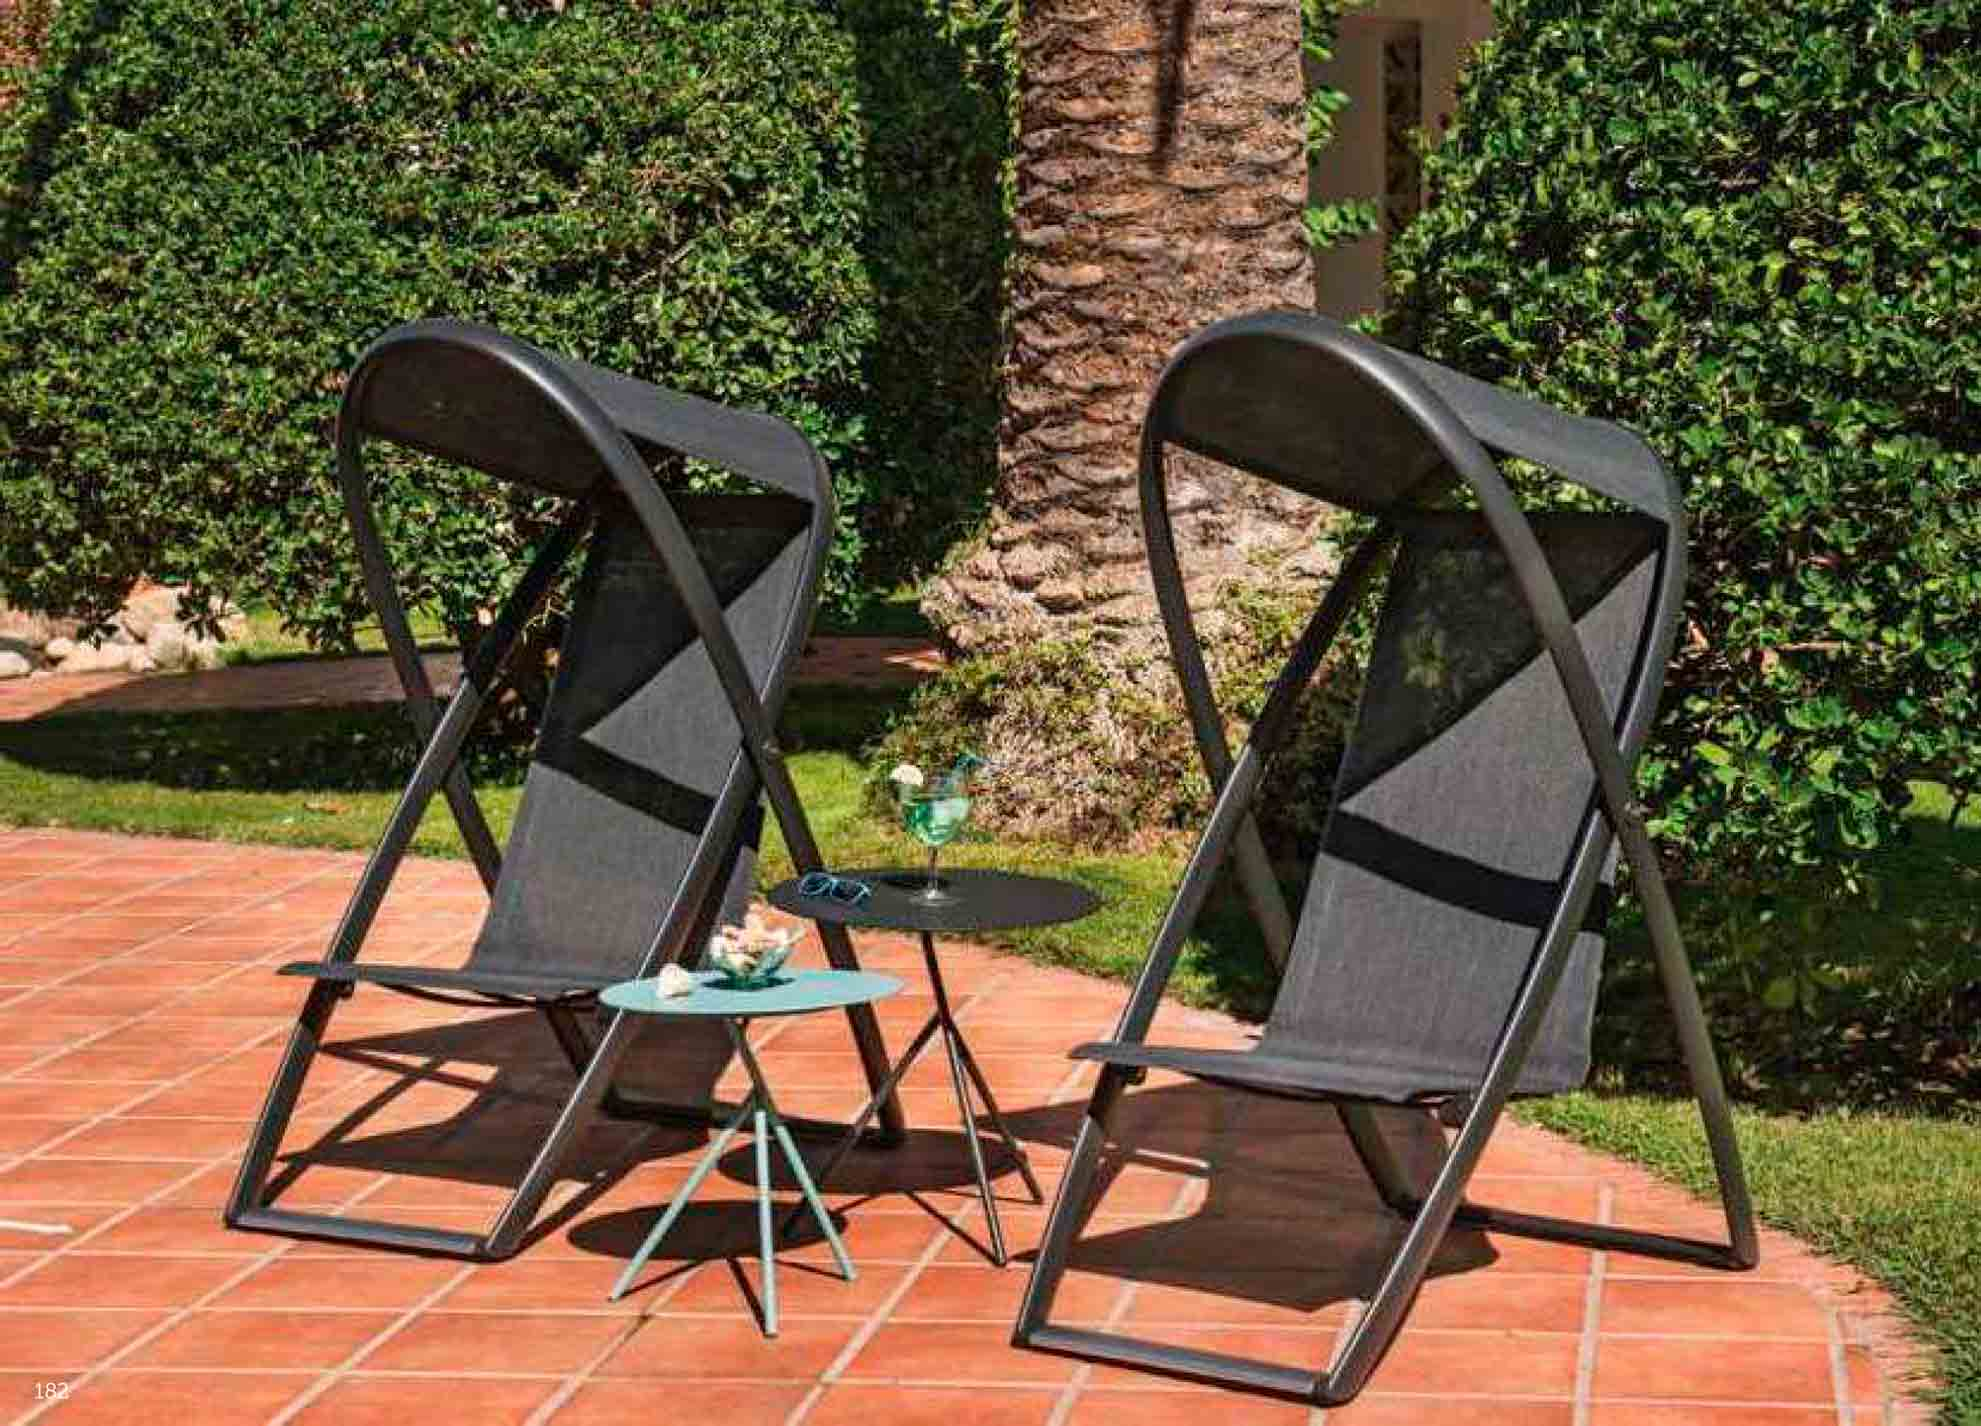 HALO-APOLLO Chair with shadow by IE3i in Mallorca